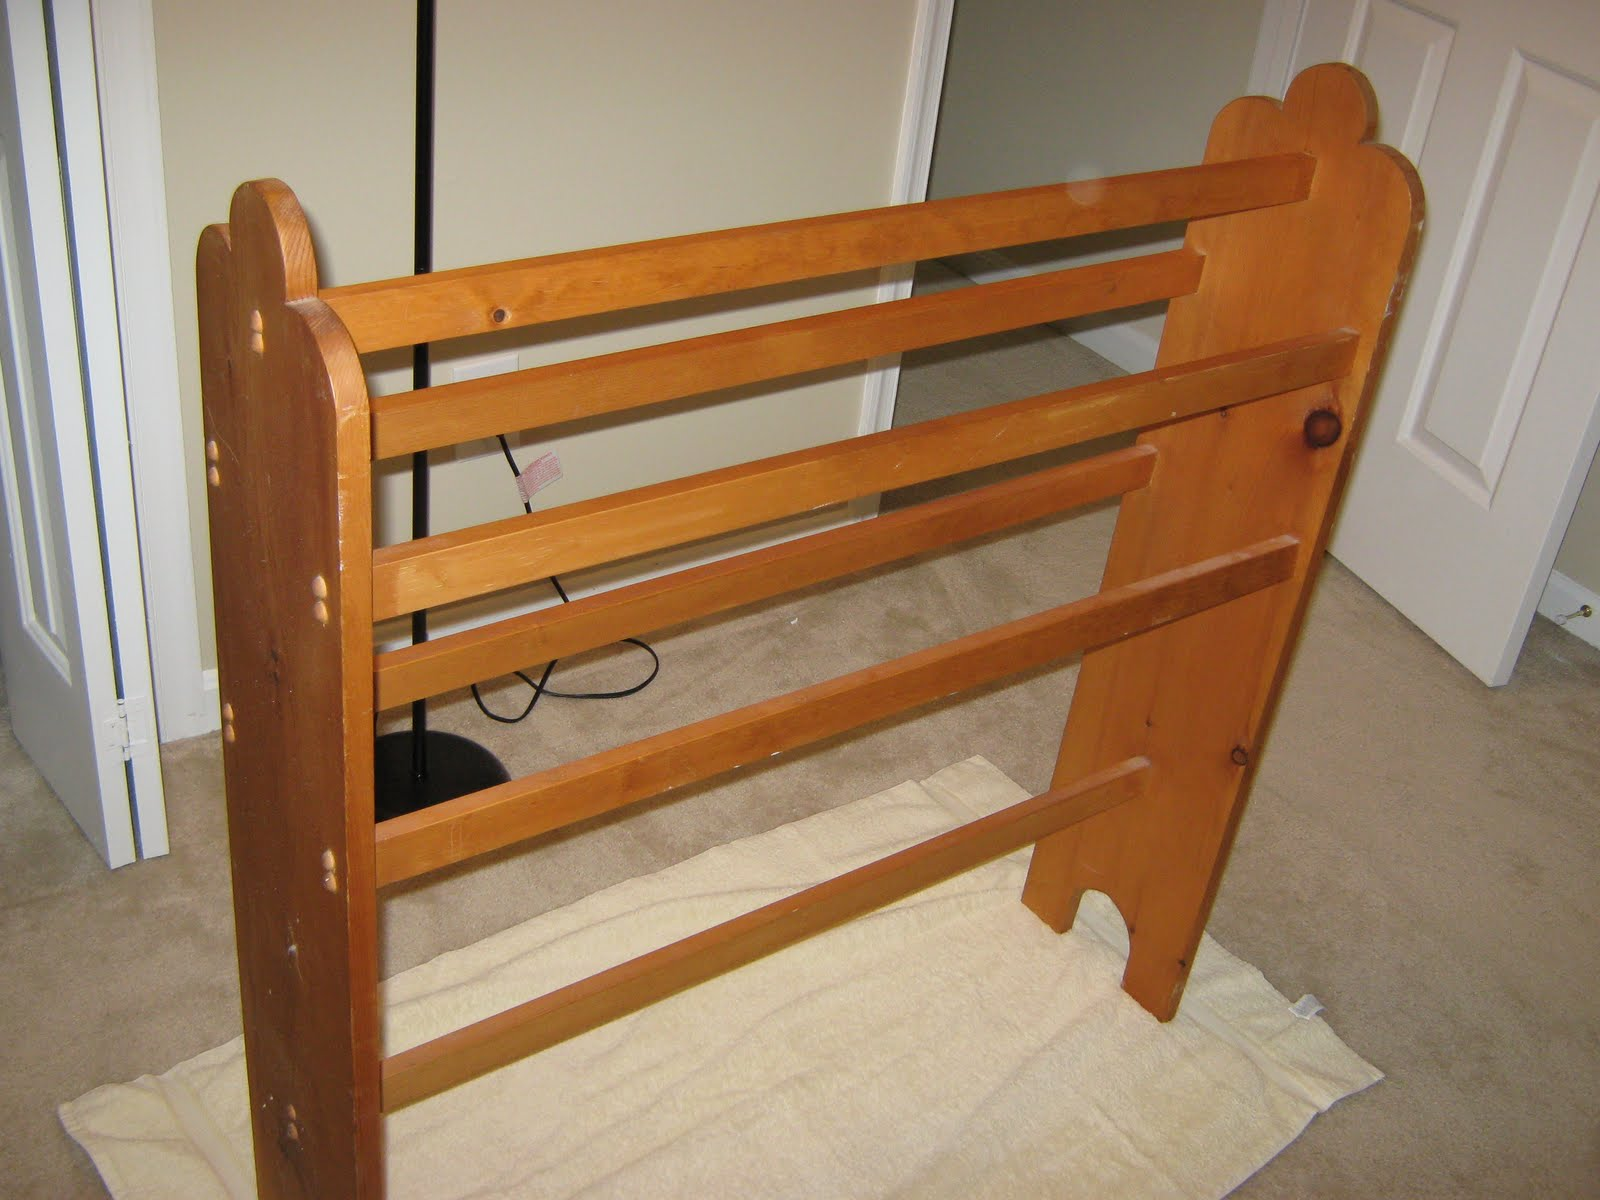 Fake-It Frugal: Heather Inn Quilt Rack